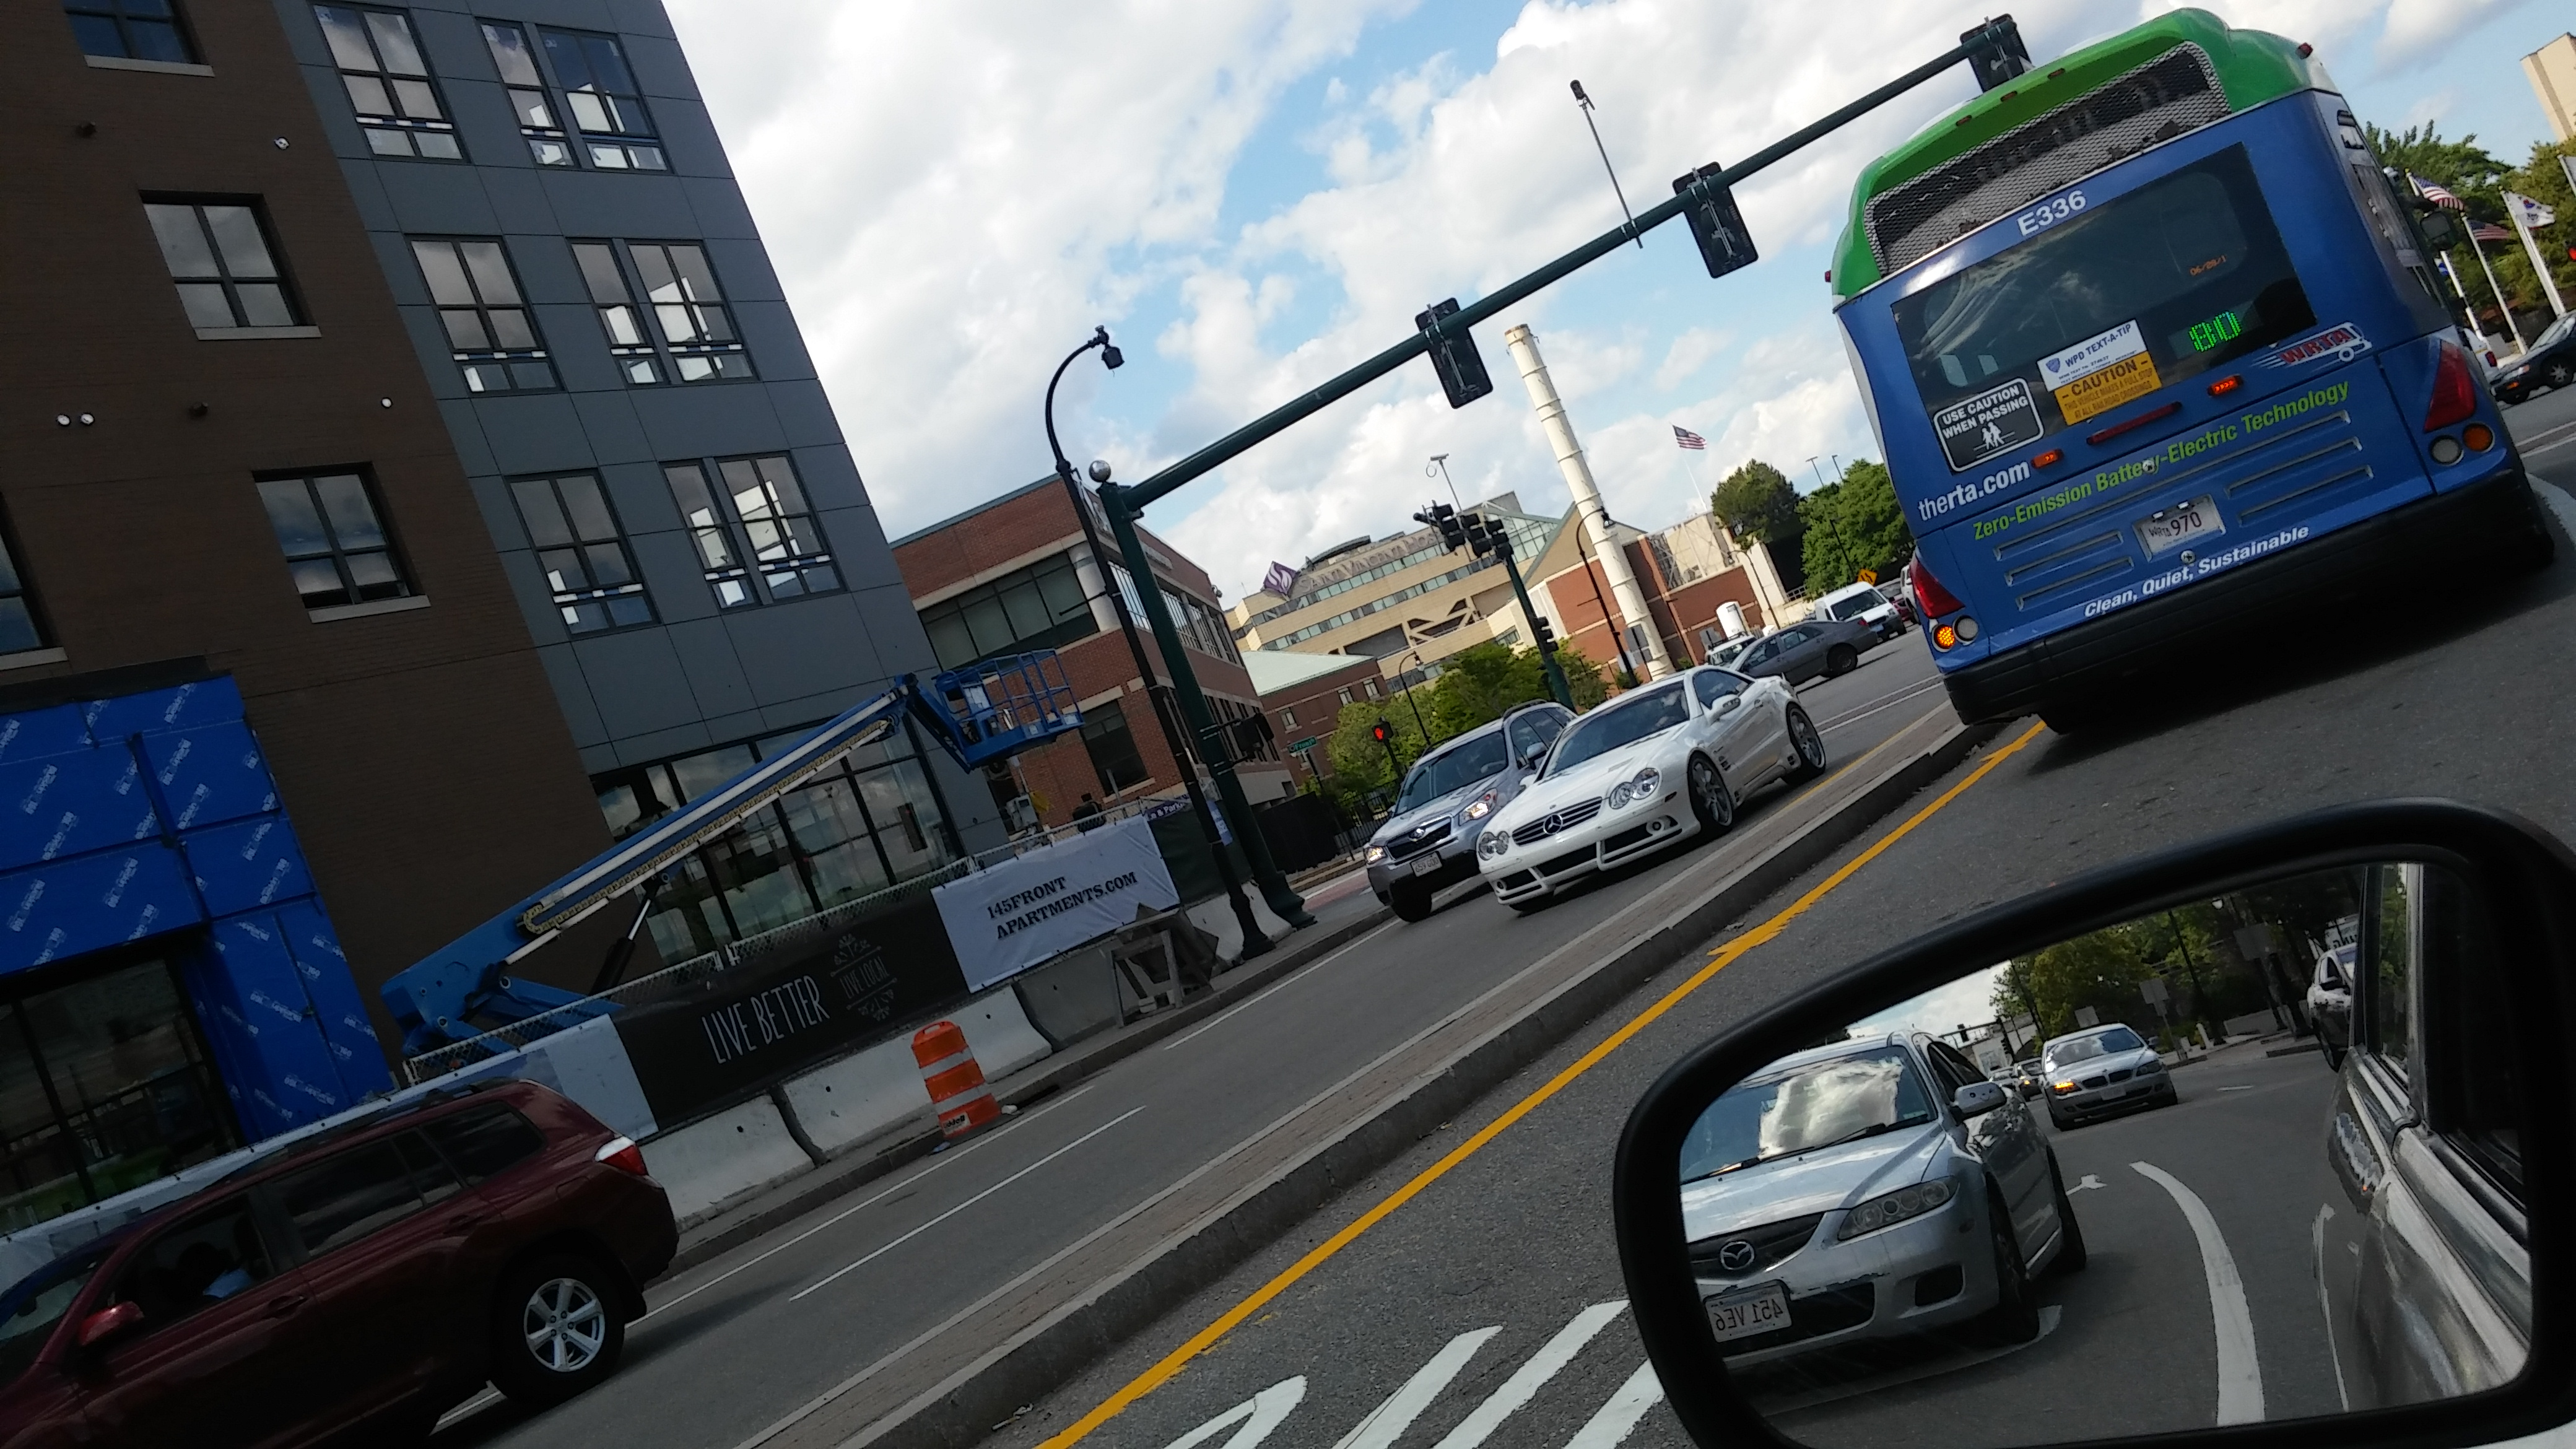 Downtown Revitalization Covers Photo : Downtown worcester revitalization incity times